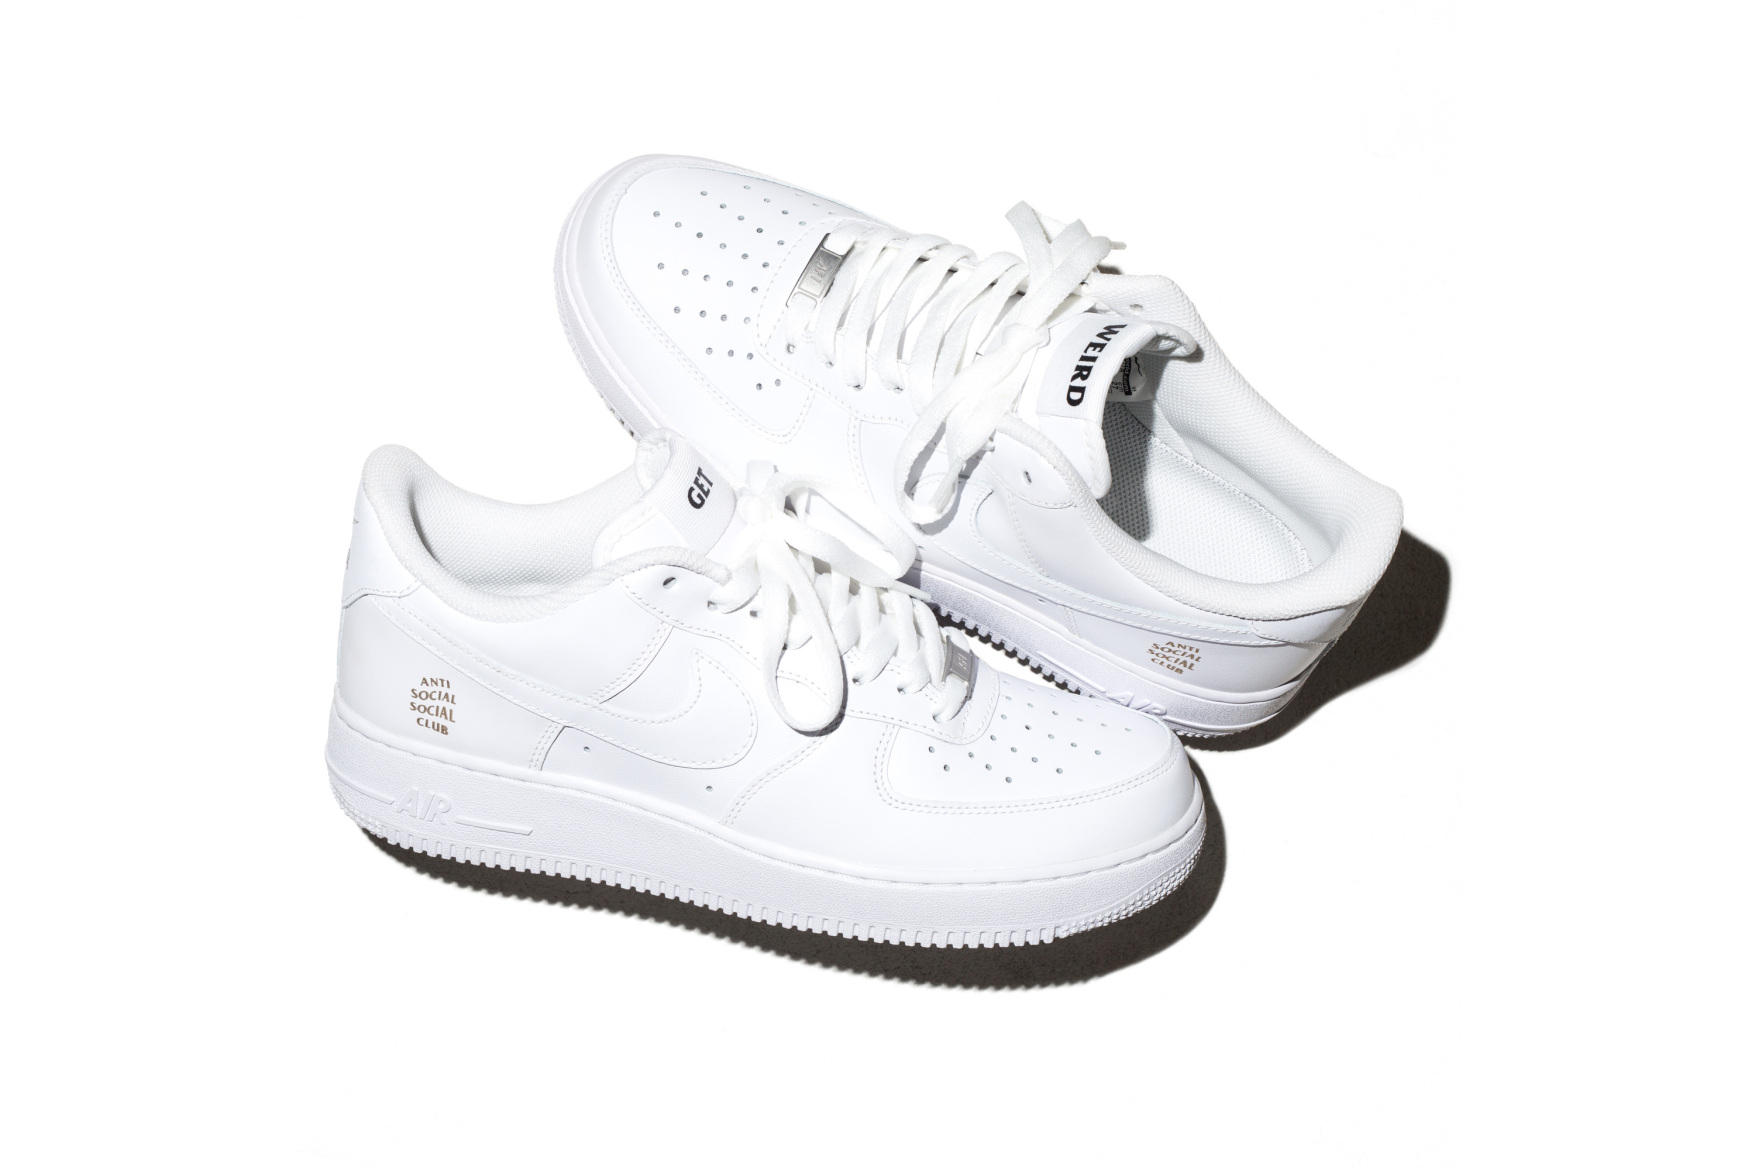 Sneaker Club Social 1 Force Air Nike Anti Goods Very PqzF8C